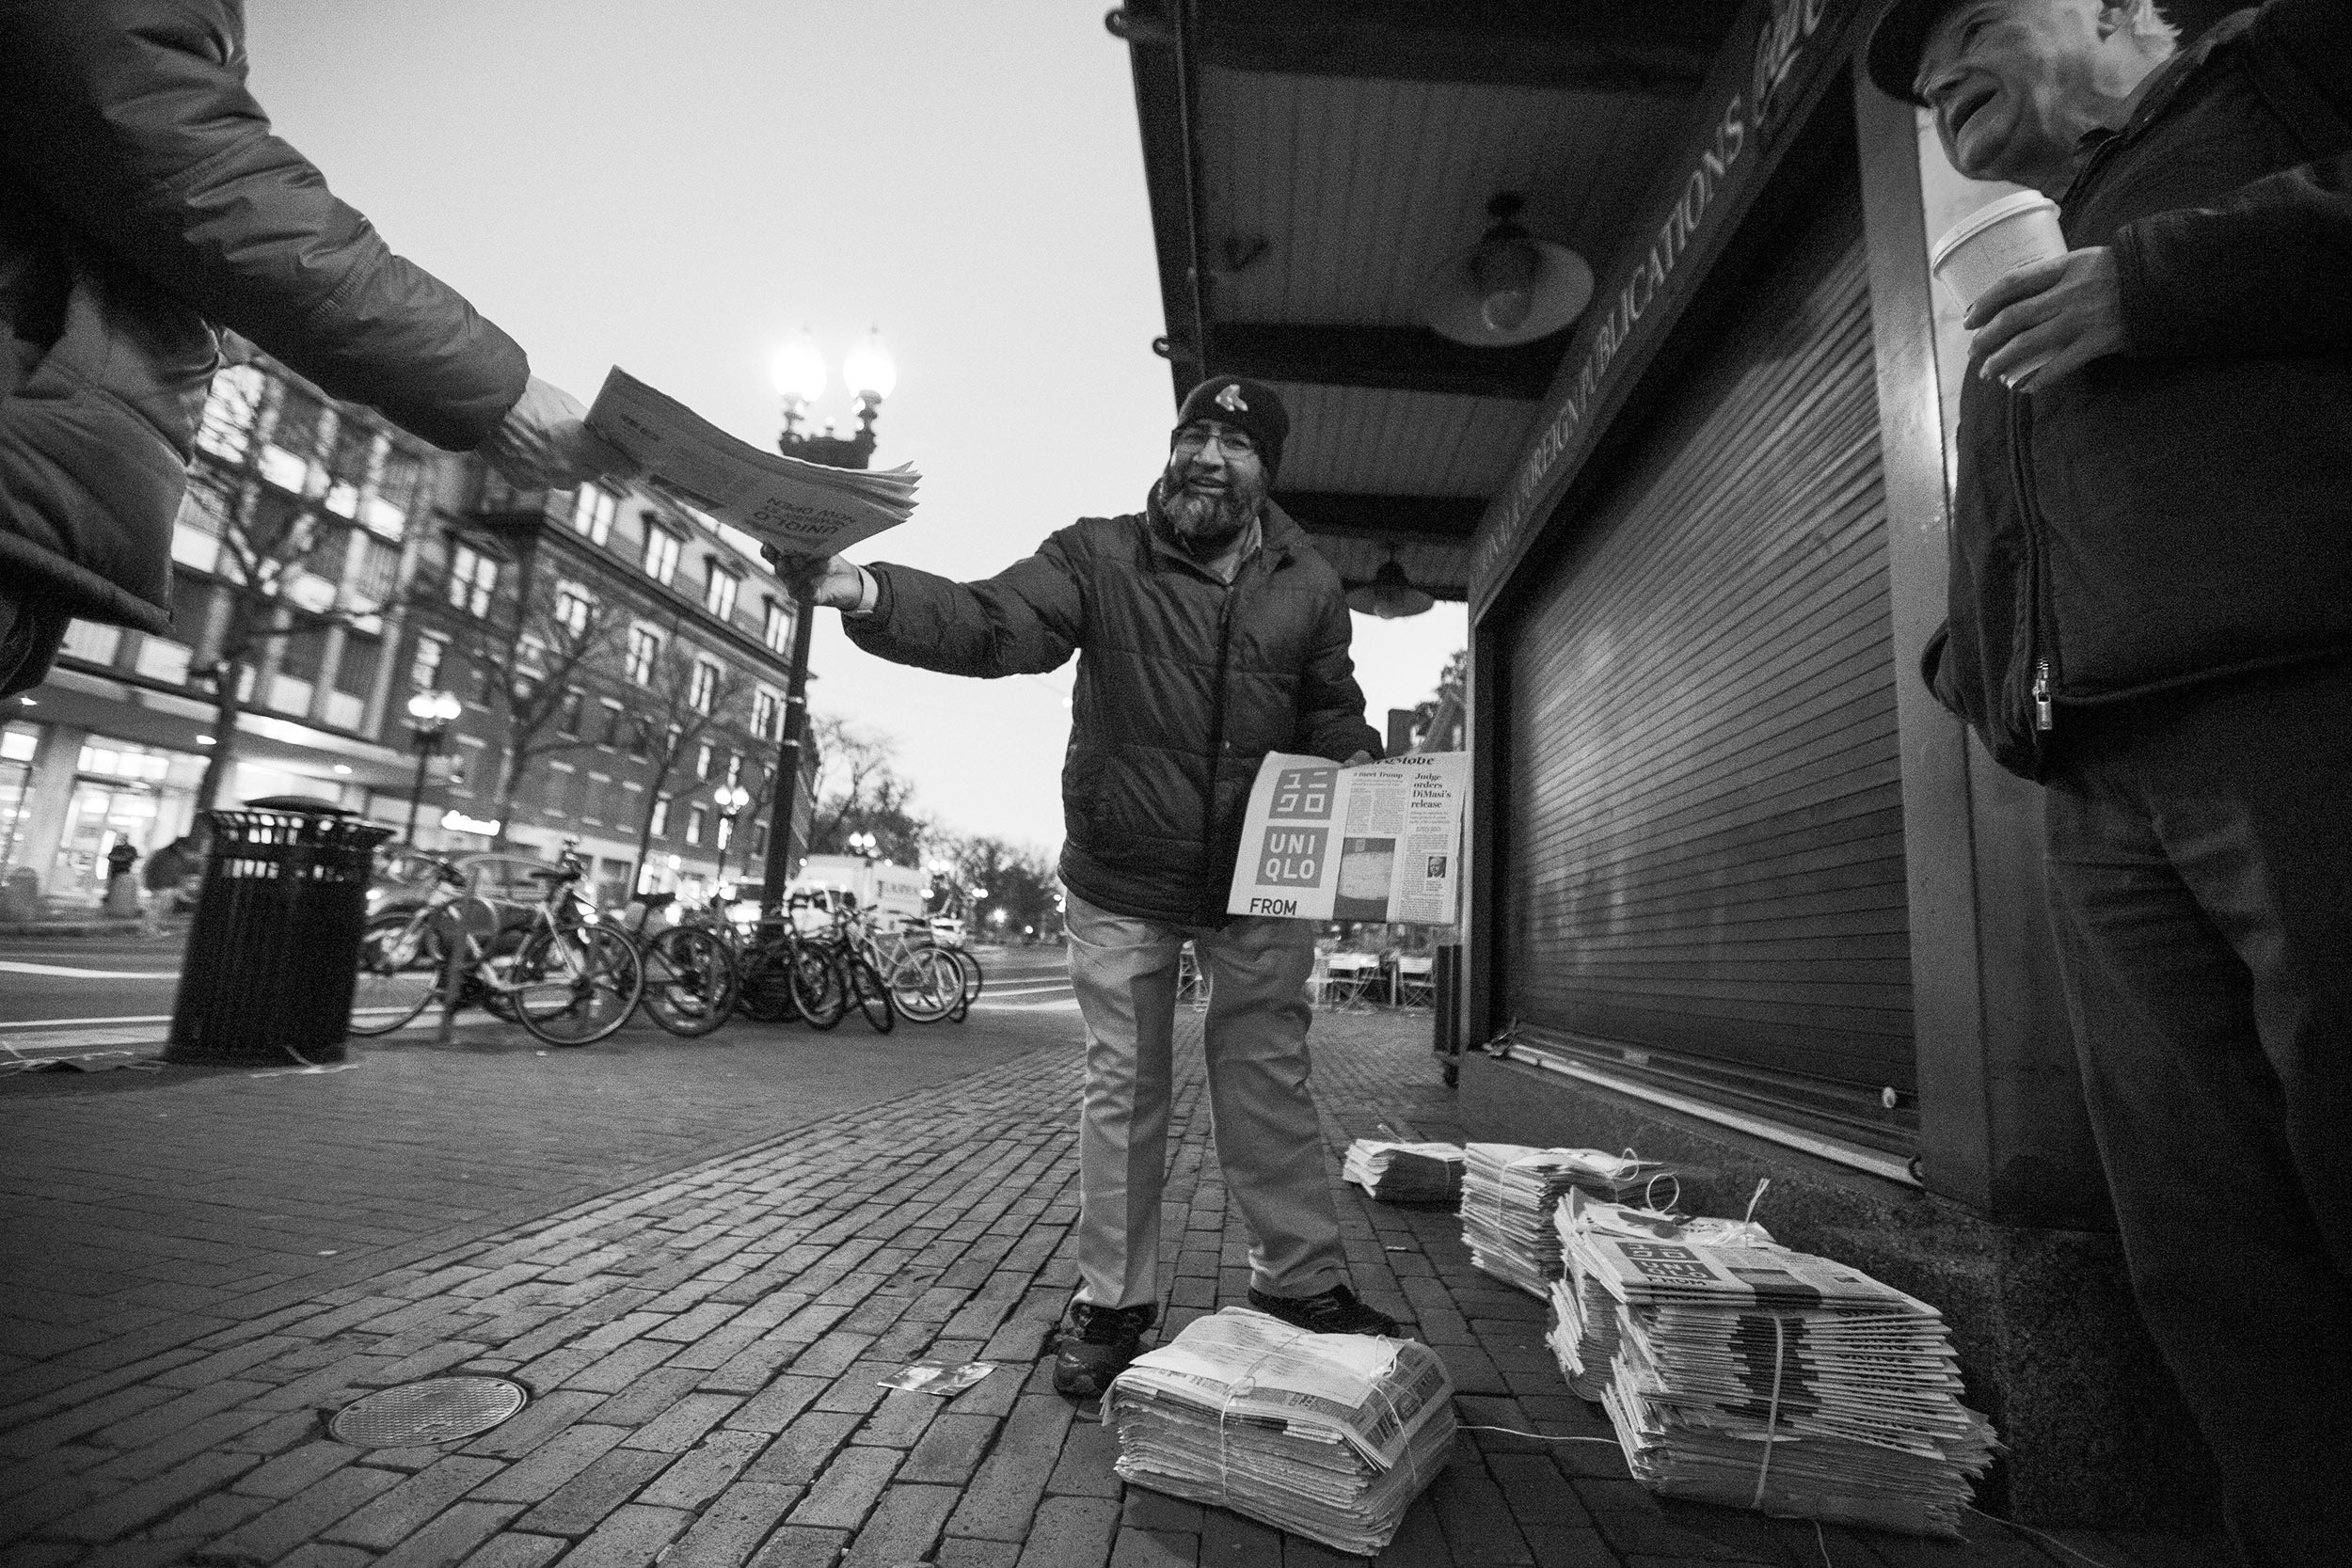 Mohamed Rahman hands out newspapers in Harvard Square.